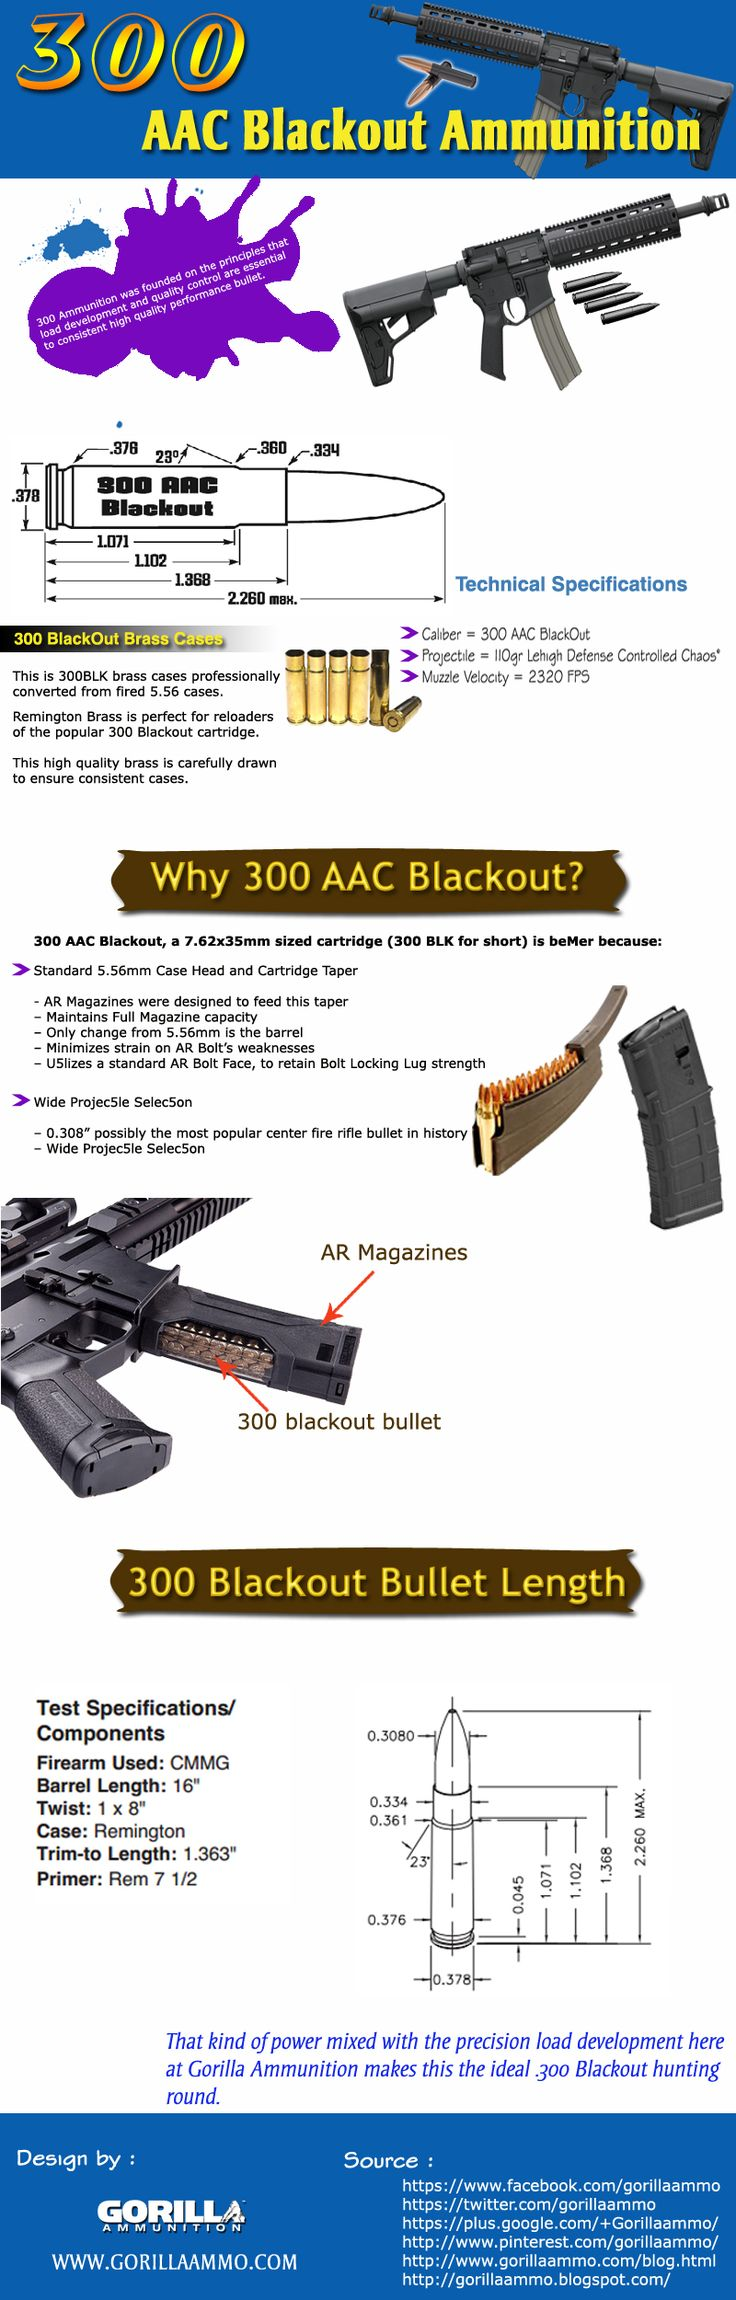 300 AAC BlackOut Ammunition See more @ http://www.gorillaammo.com/